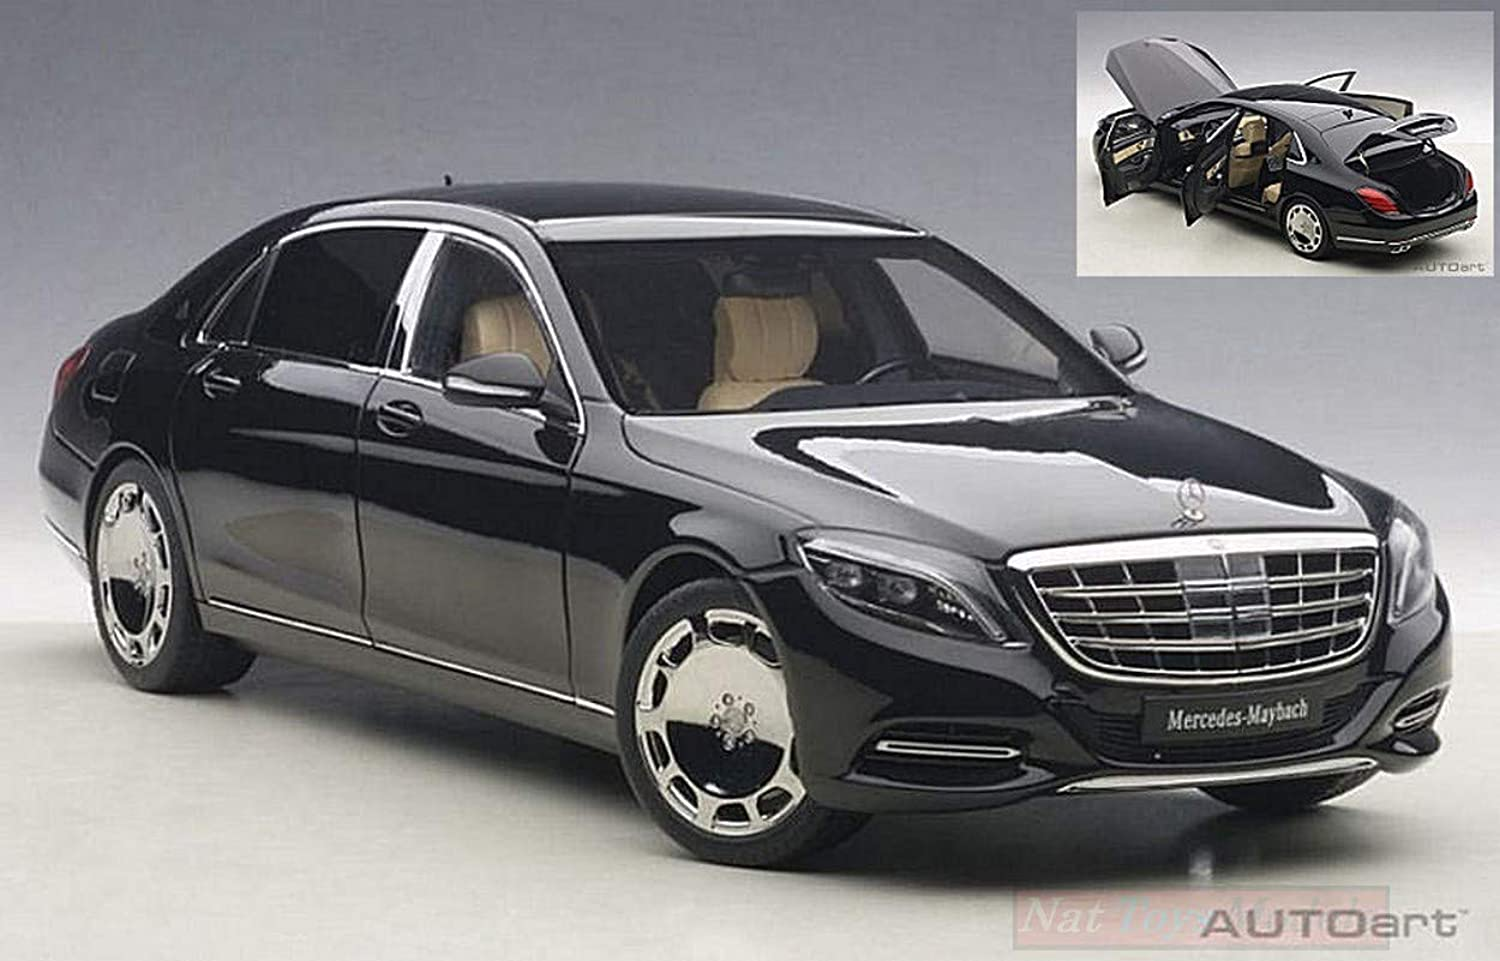 AUTOART AA76293 MERCEDES MAYBACH S-KLASSE (S600) 2016 schwarz 1 18 DIE CAST MODEL